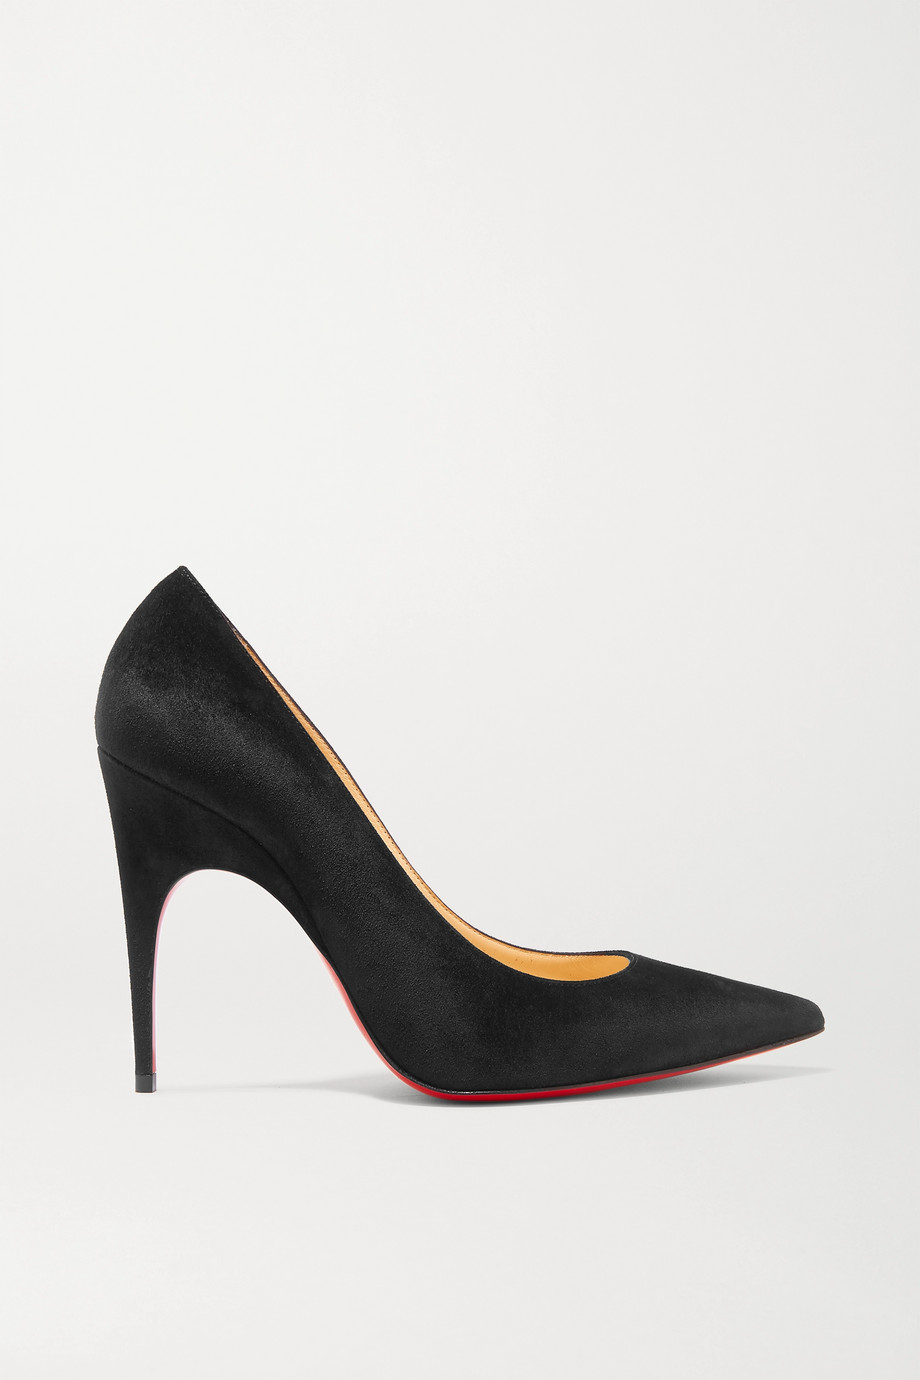 Christian Louboutin Alminette 100 suede pumps